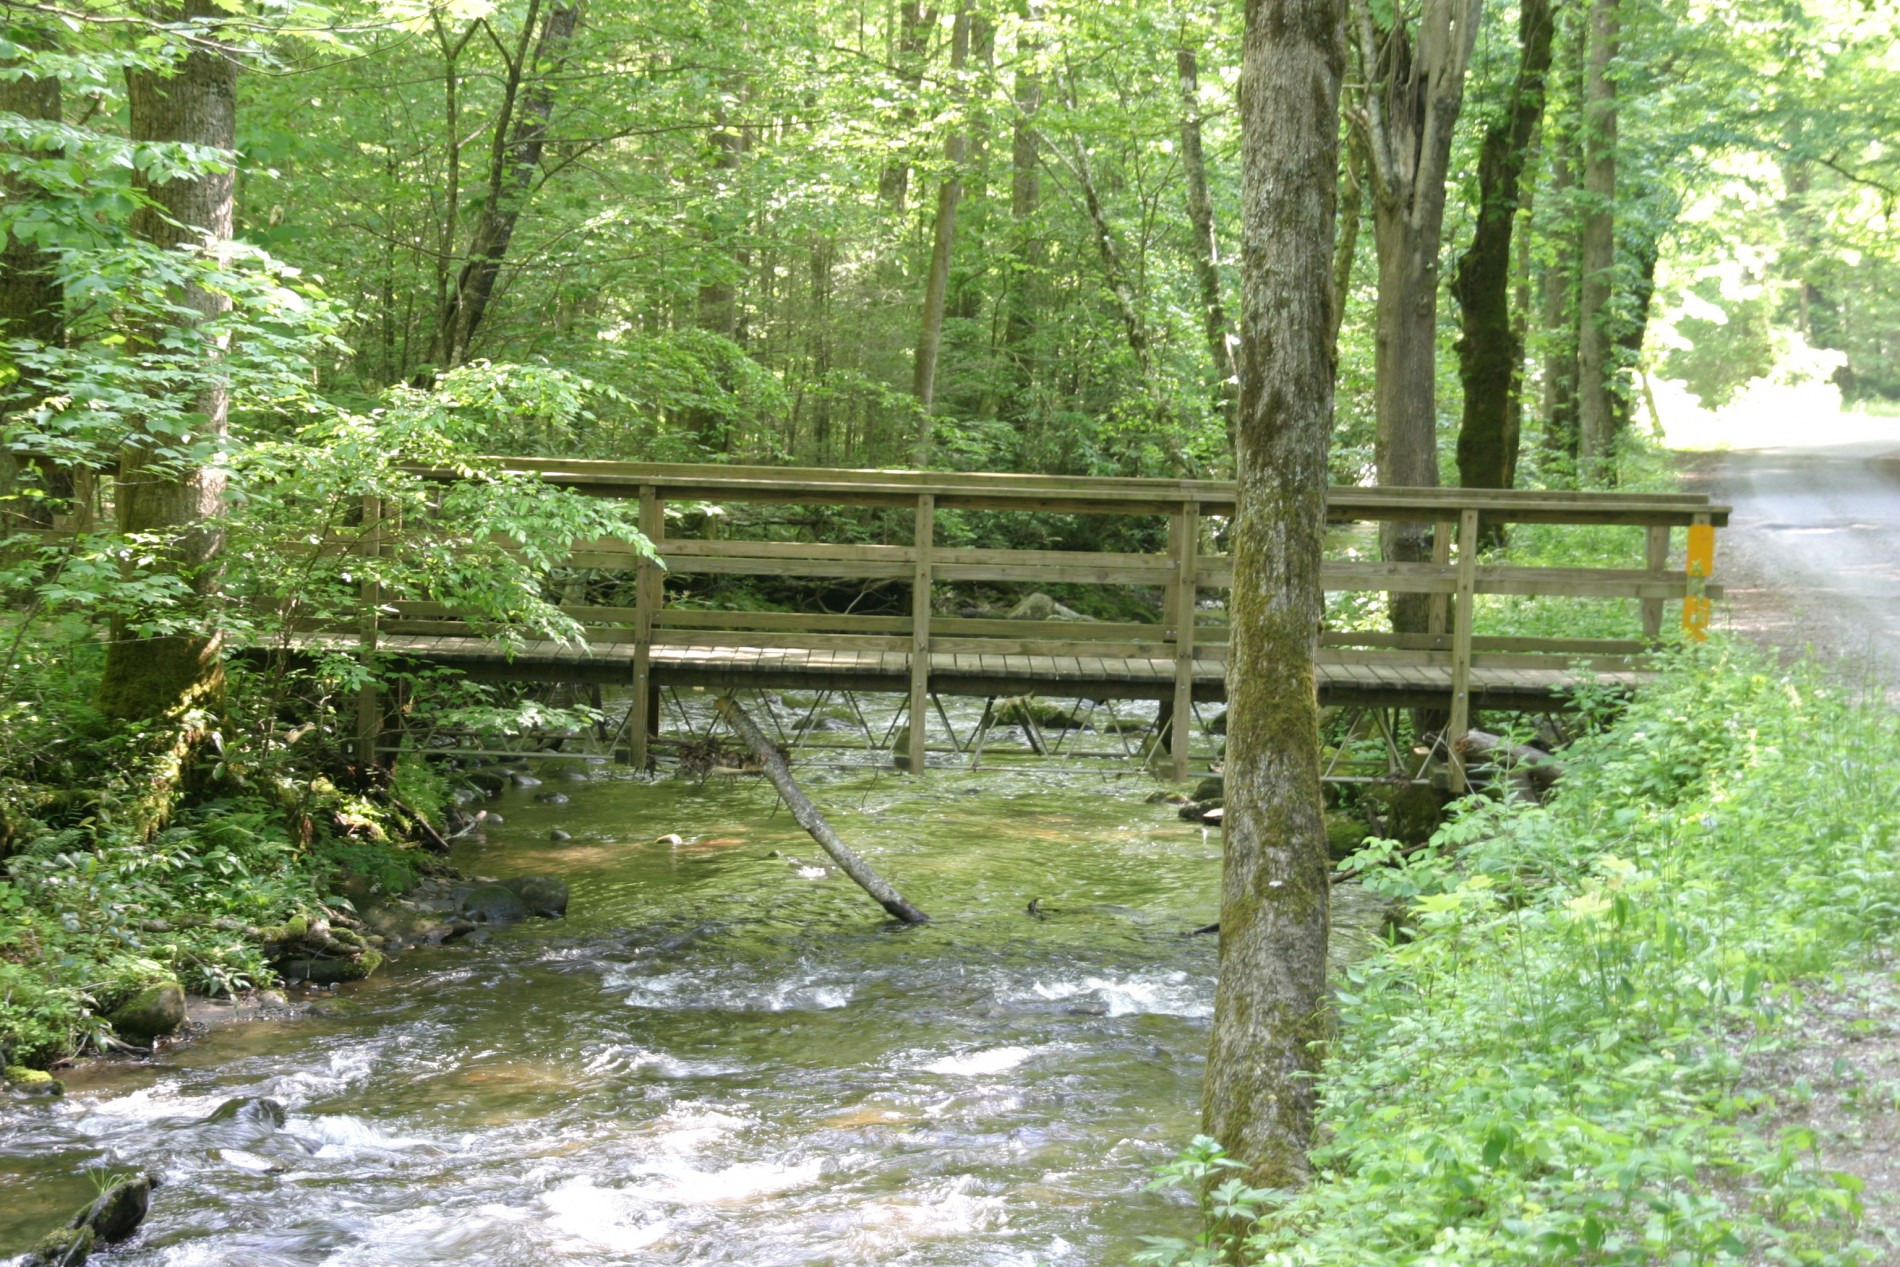 North River Foot-Bridge. Trailhead that leads to the Donley Cabin